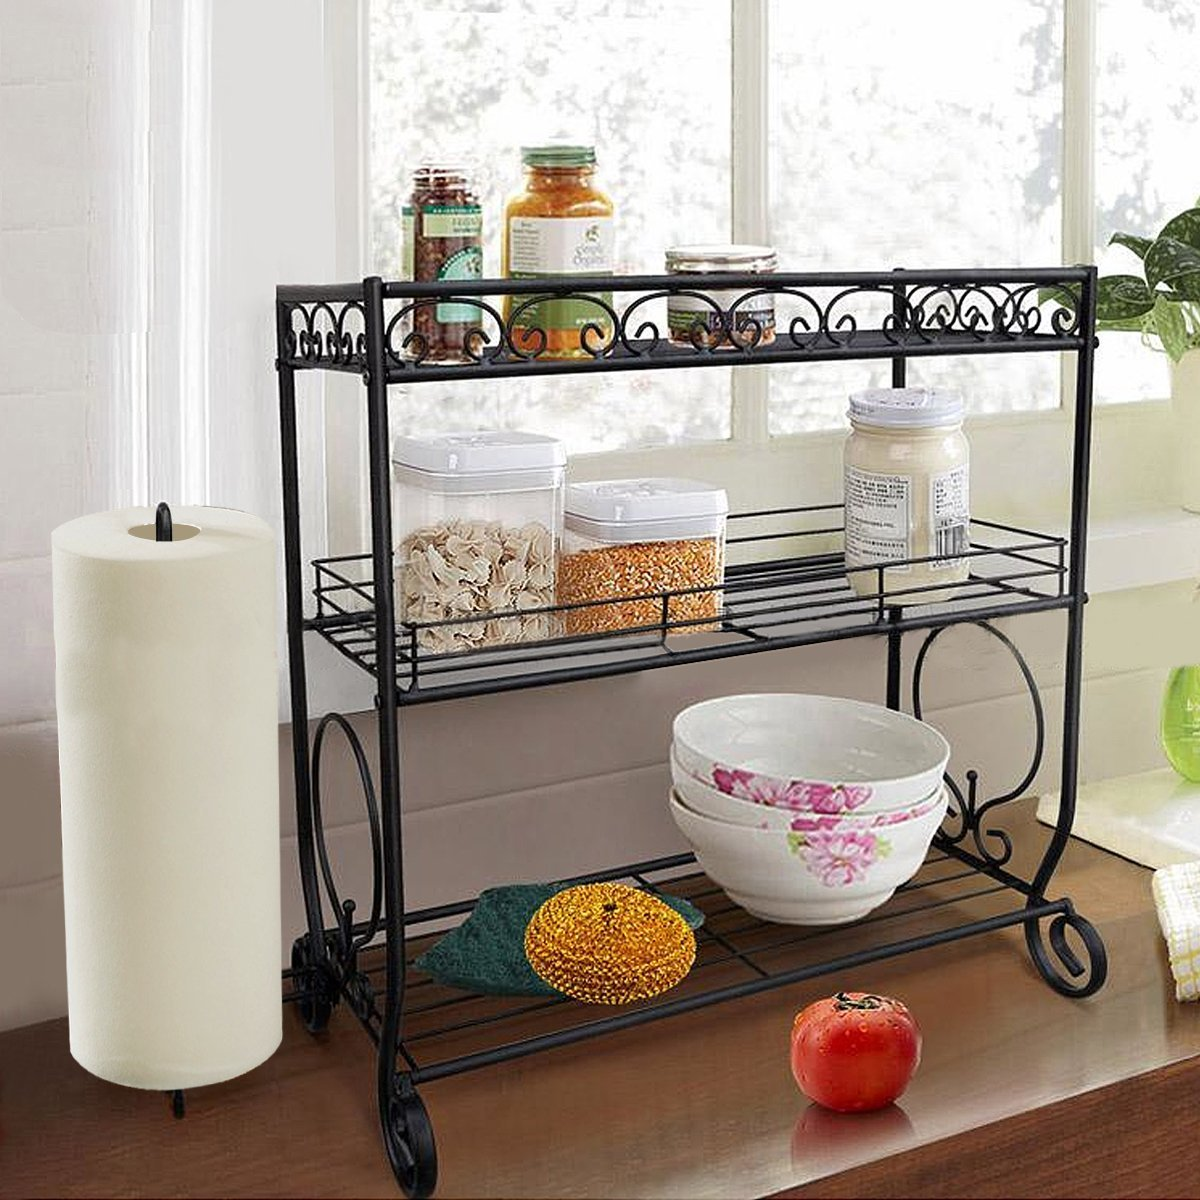 3 Tier Spice Rack Kitchen Storage Stand Towel Holder Jars